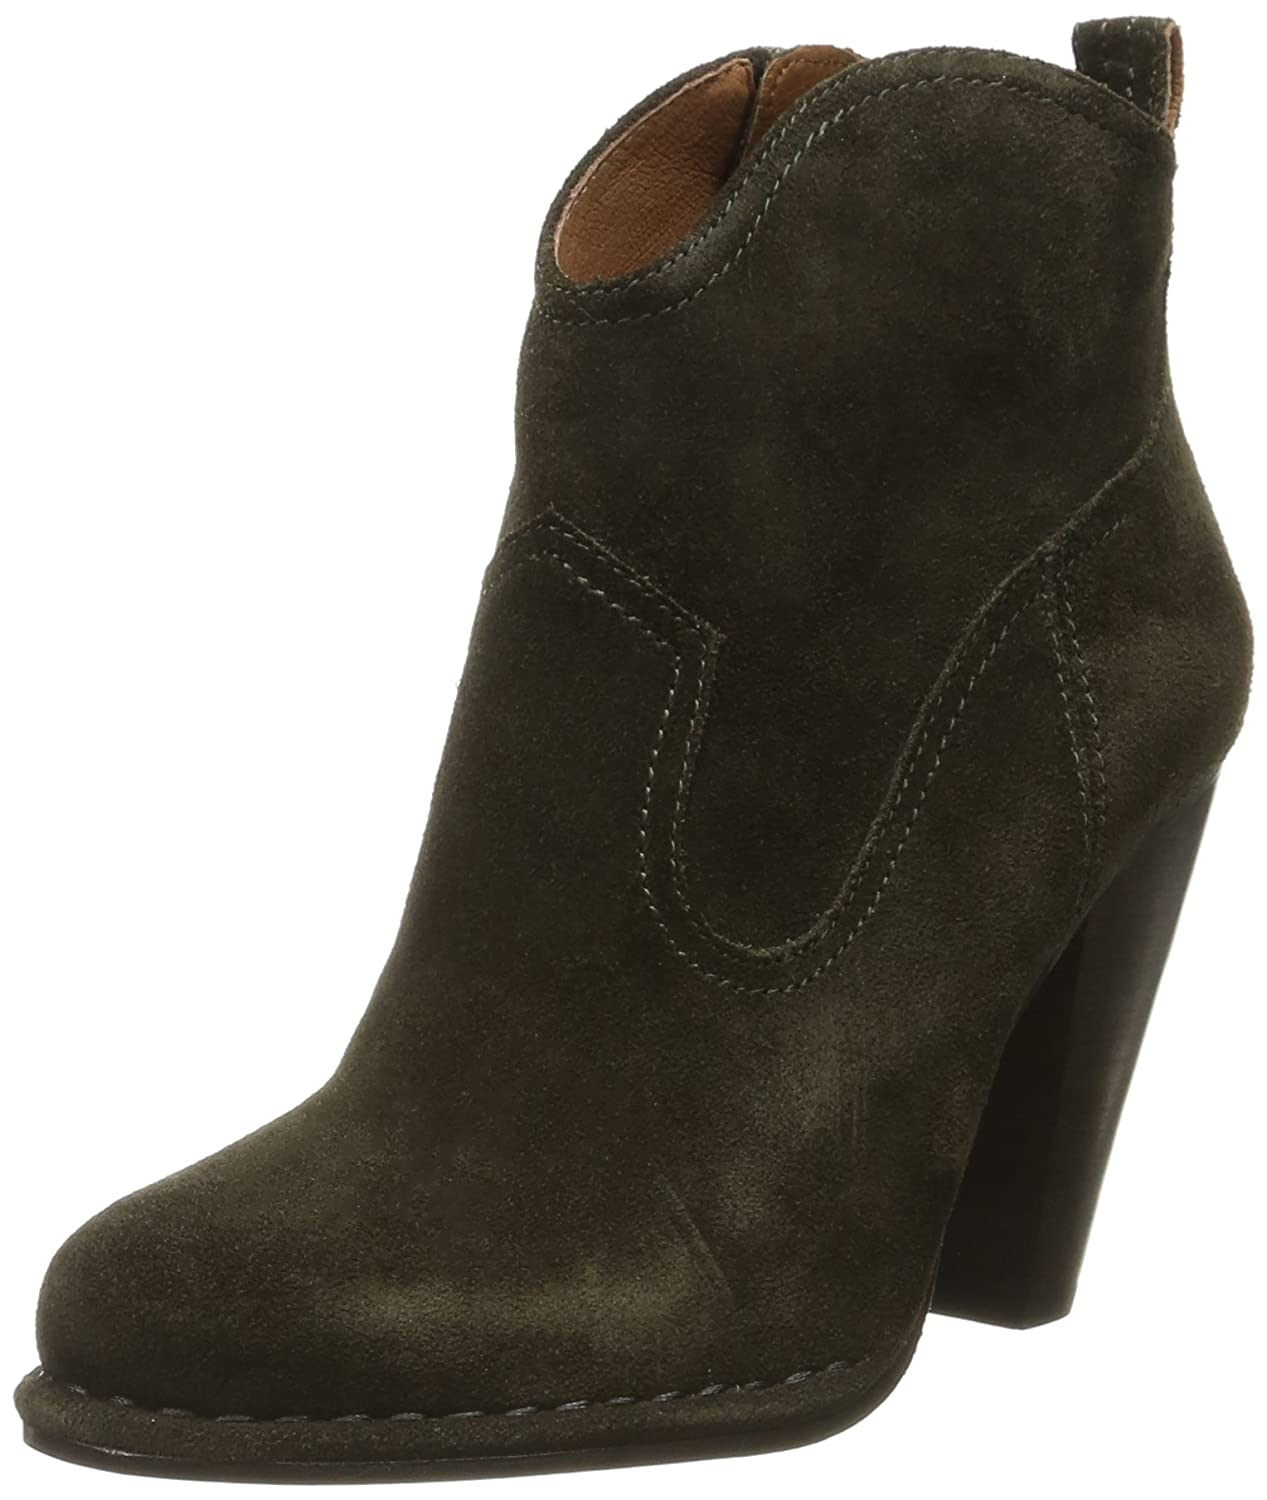 FRYE Women's Madeline Short Suede Boot B01A2SJ974 9.5 B(M) US|Fatigue